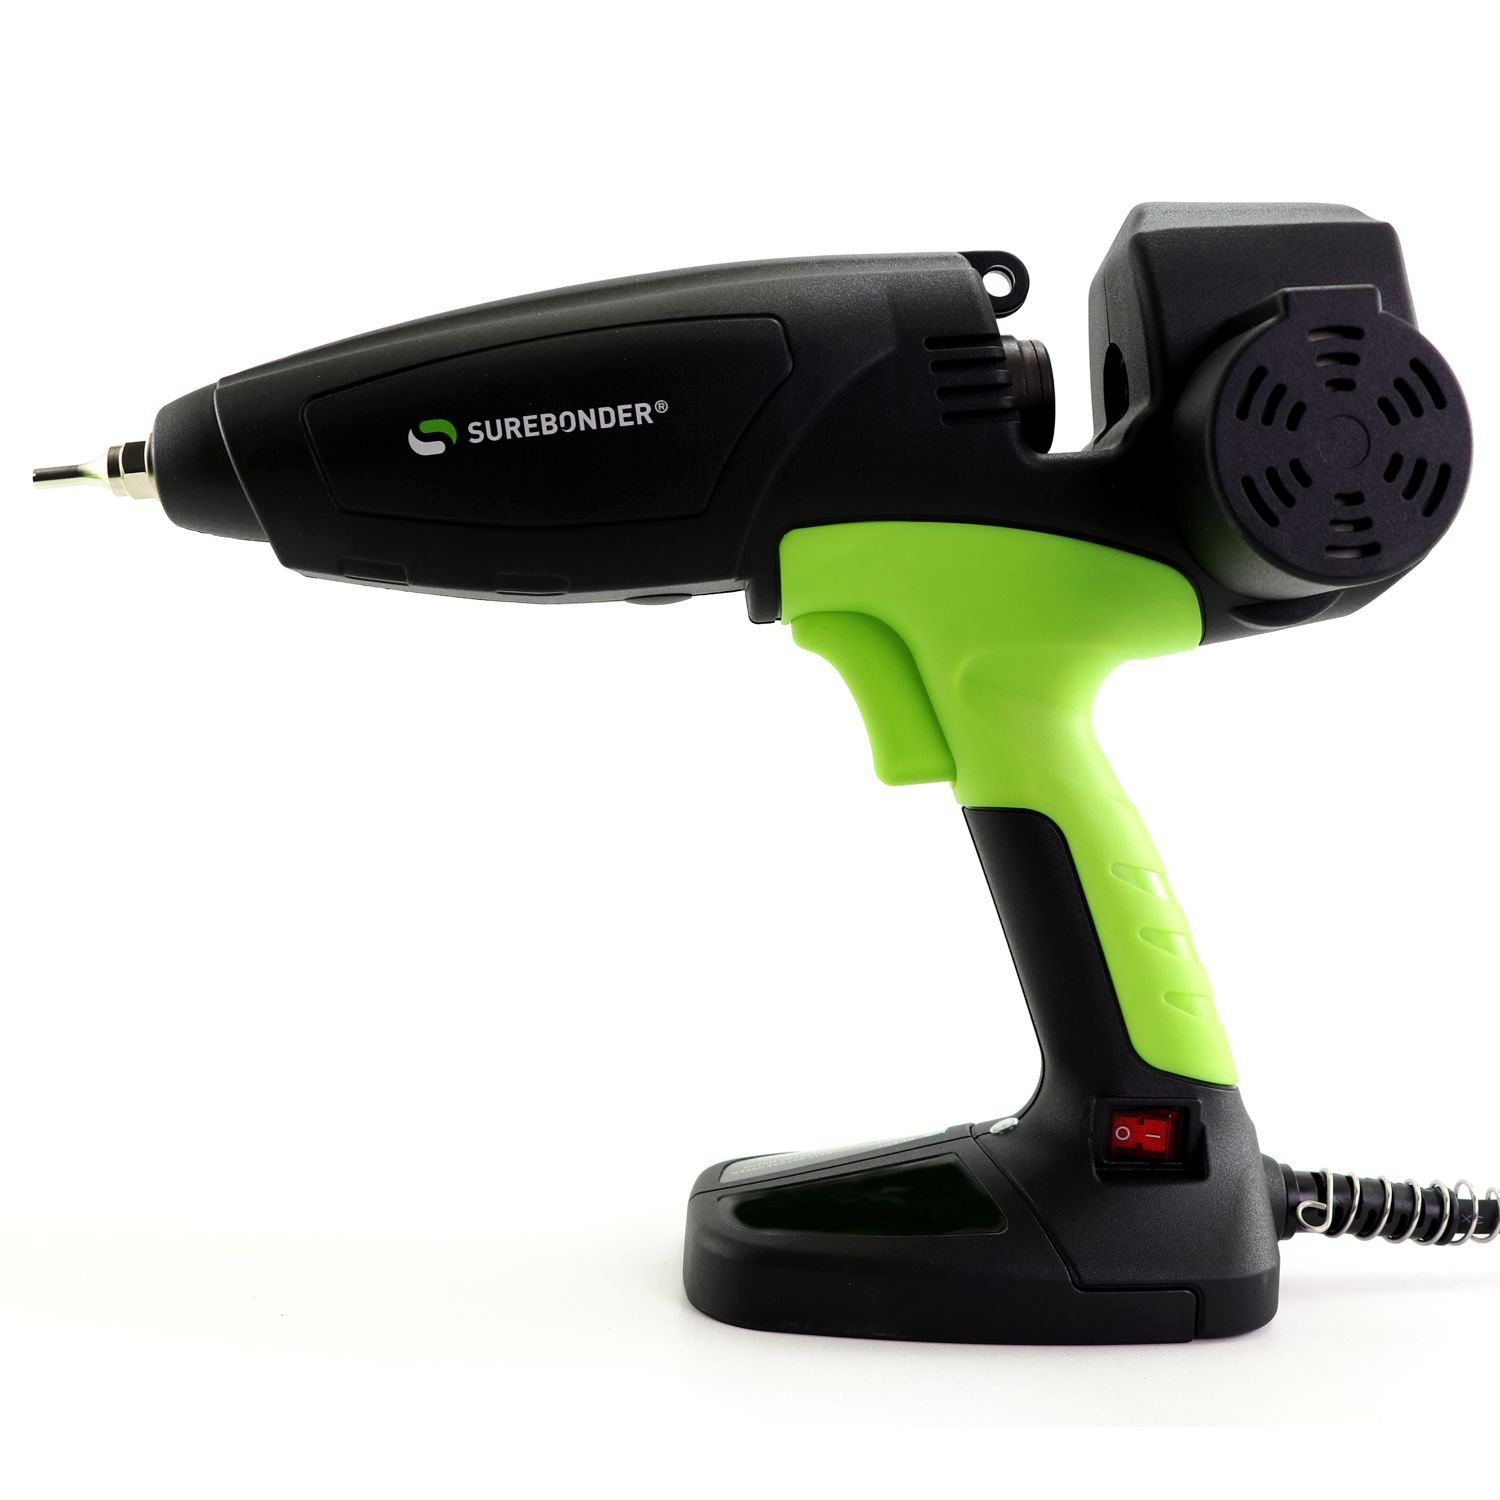 MGG-450 450 Watt Motorized Professional Heavy Duty Hot Glue Gun - Uses full size, 7/16'' glue sticks